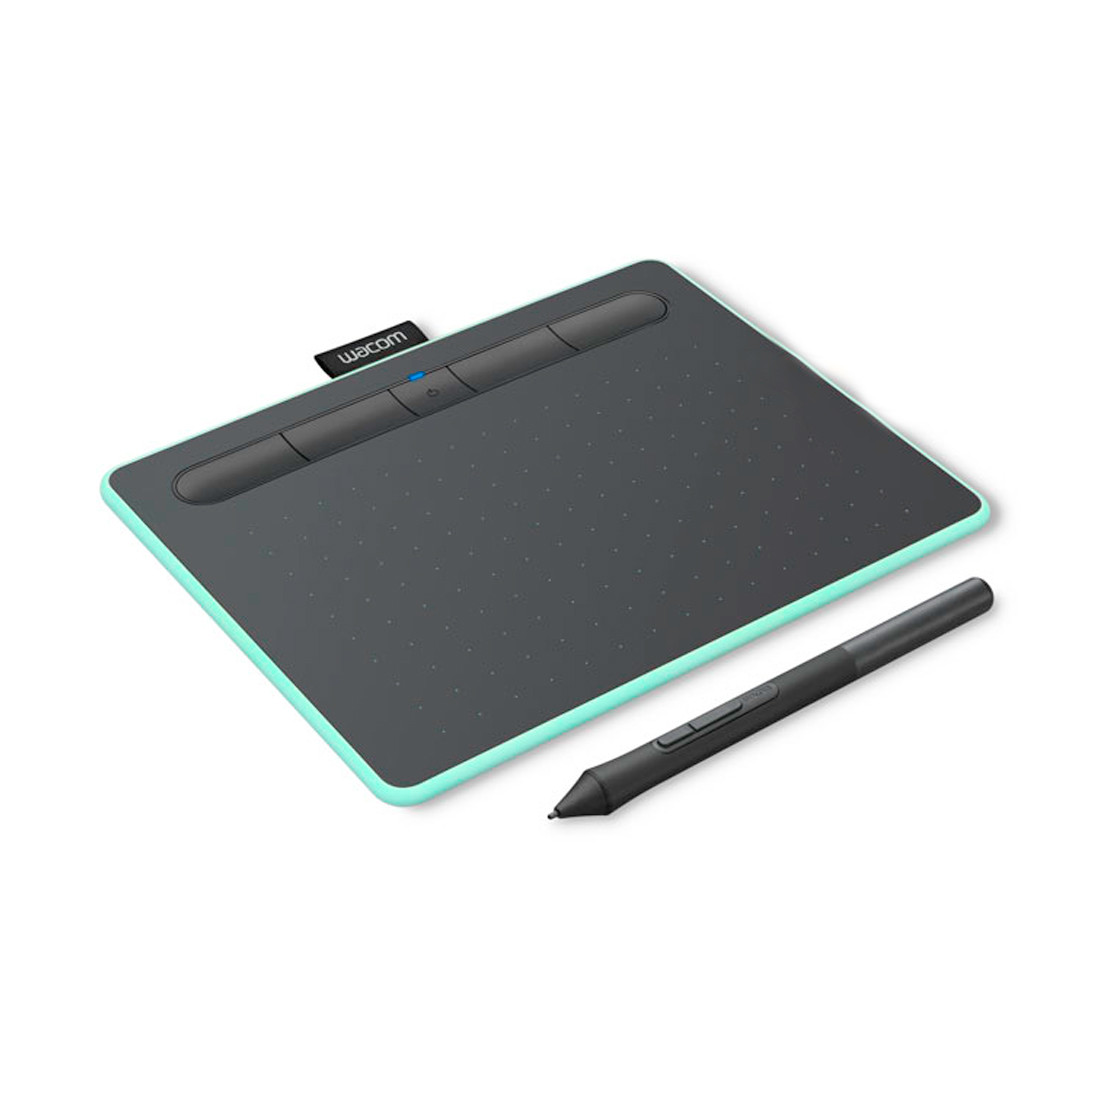 Графический планшет Wacom Intuos Medium Bluetooth (CTL-6100WLE-N) Зелёный